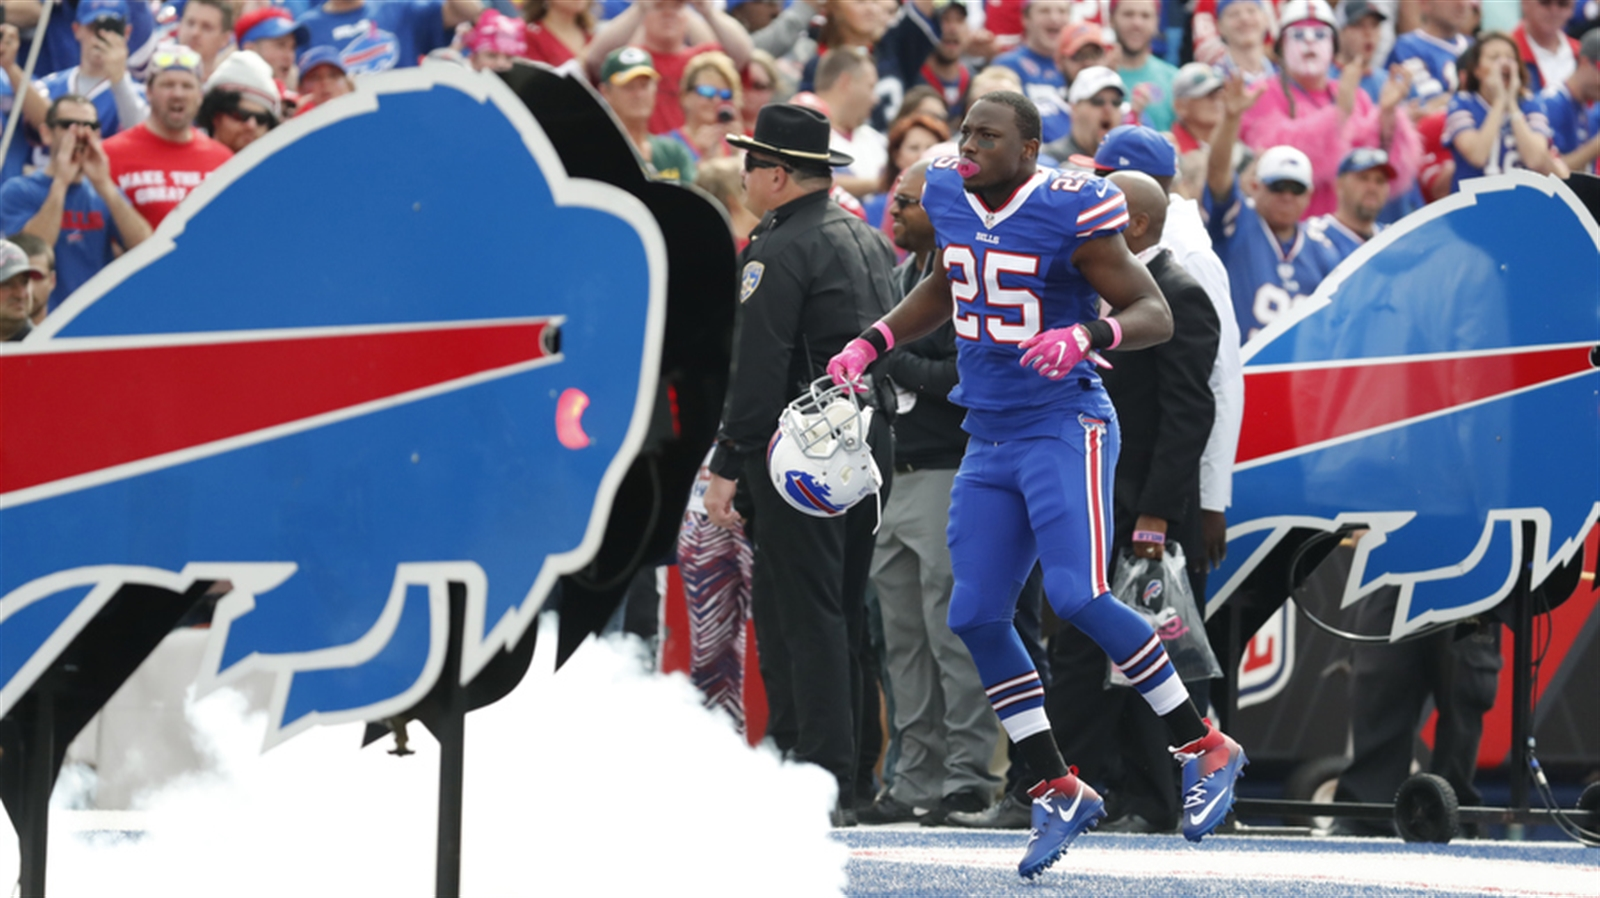 LeSean McCoy takes the field for Sunday's game against San Francisco. (Harry Scull Jr./Buffalo News)